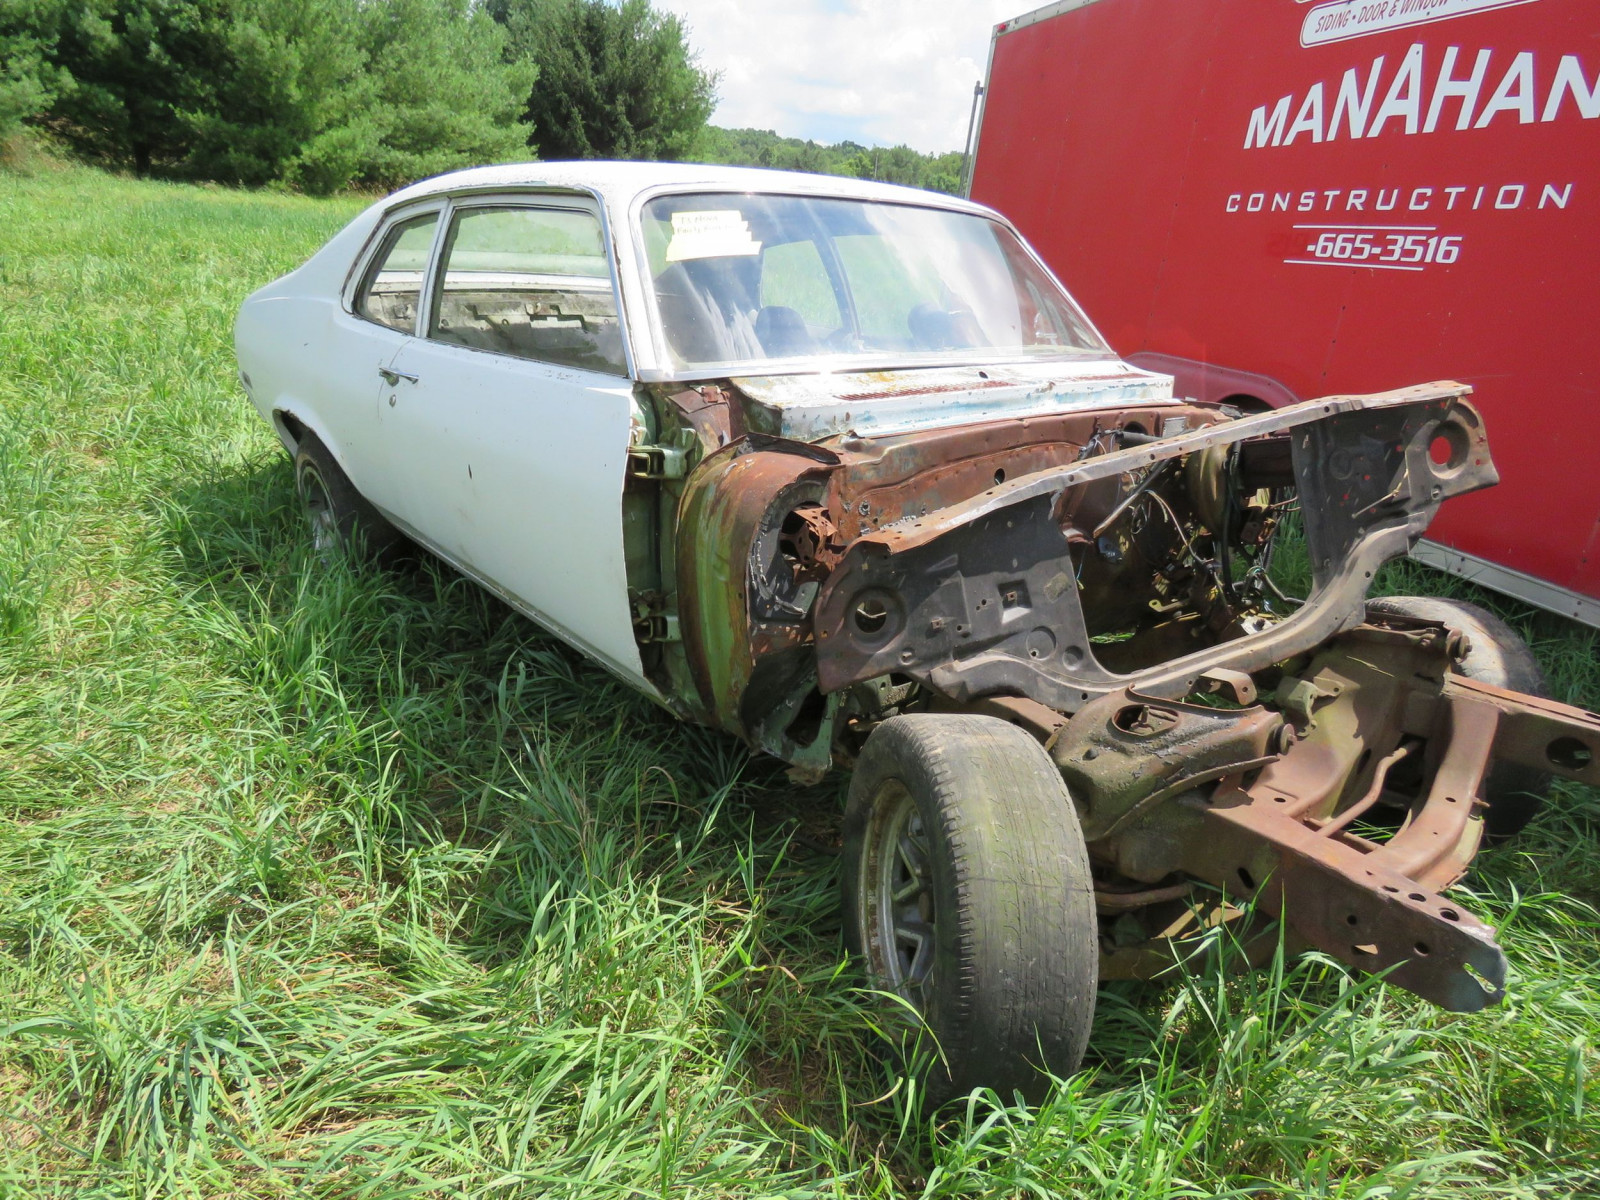 1973 Chevrolet Nova Body for Restore or Parts - Image 3